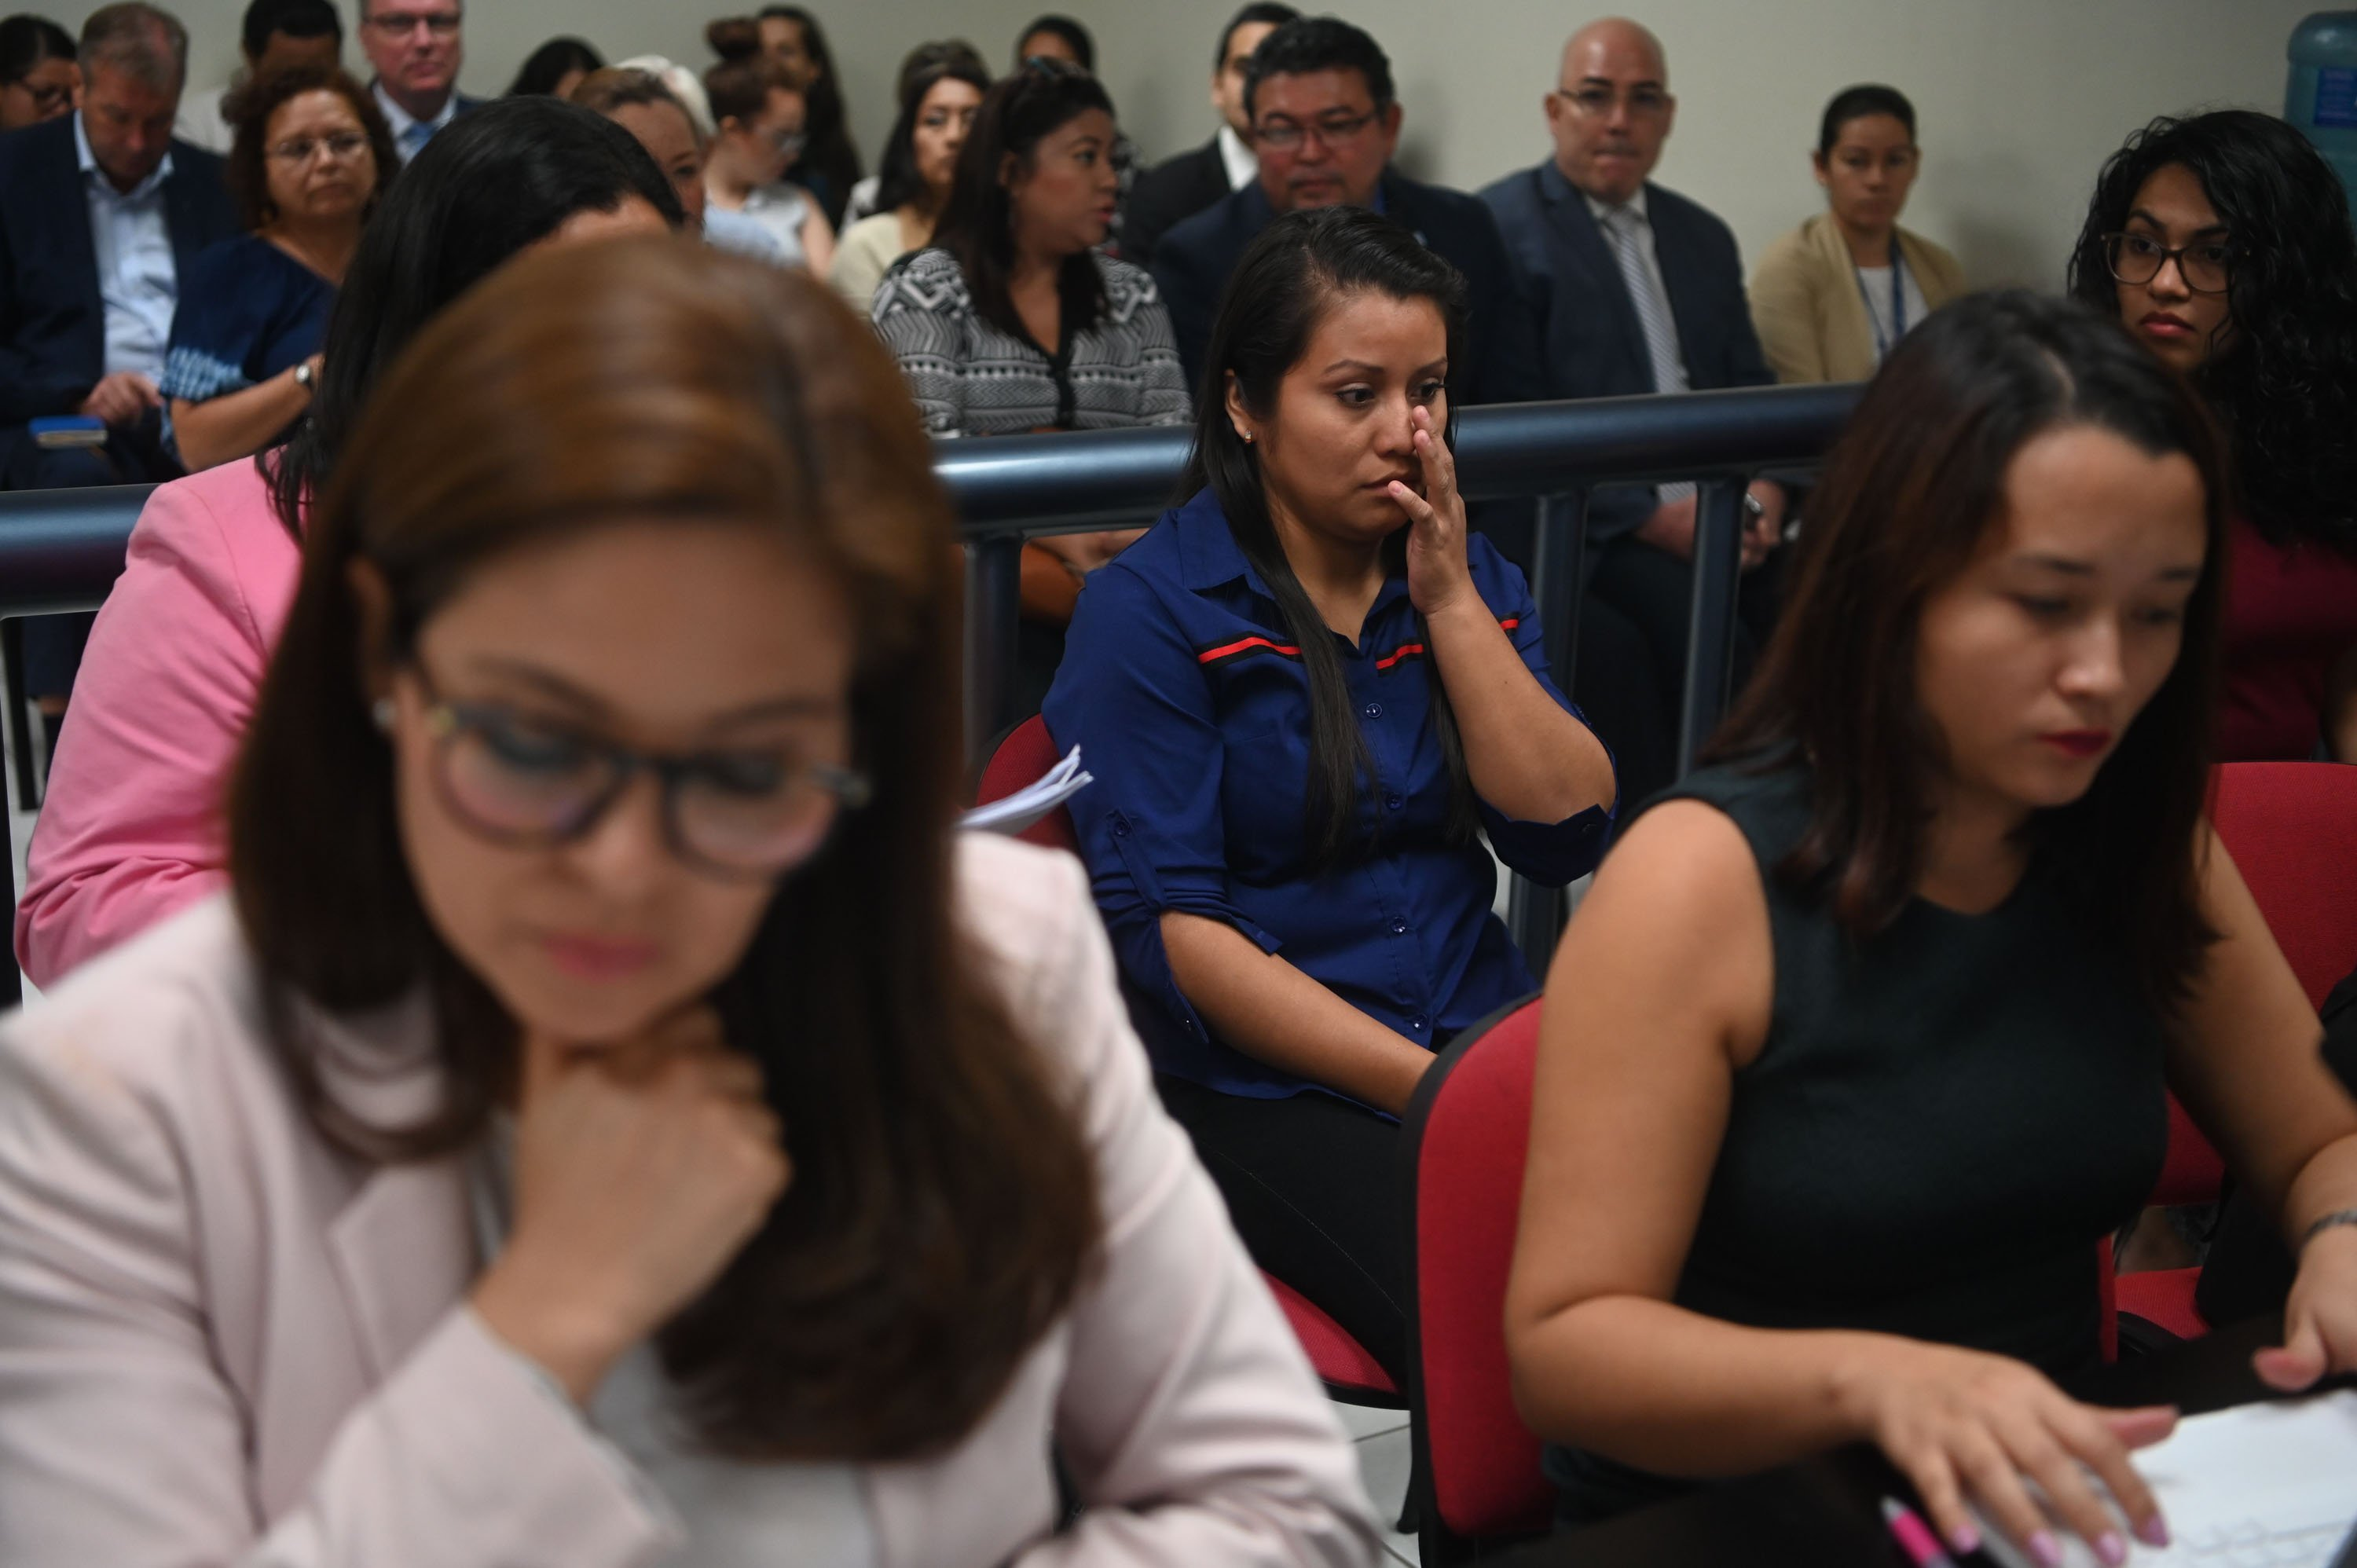 Abortion retrial for Evelyn Hernandez begins again in El Salvador